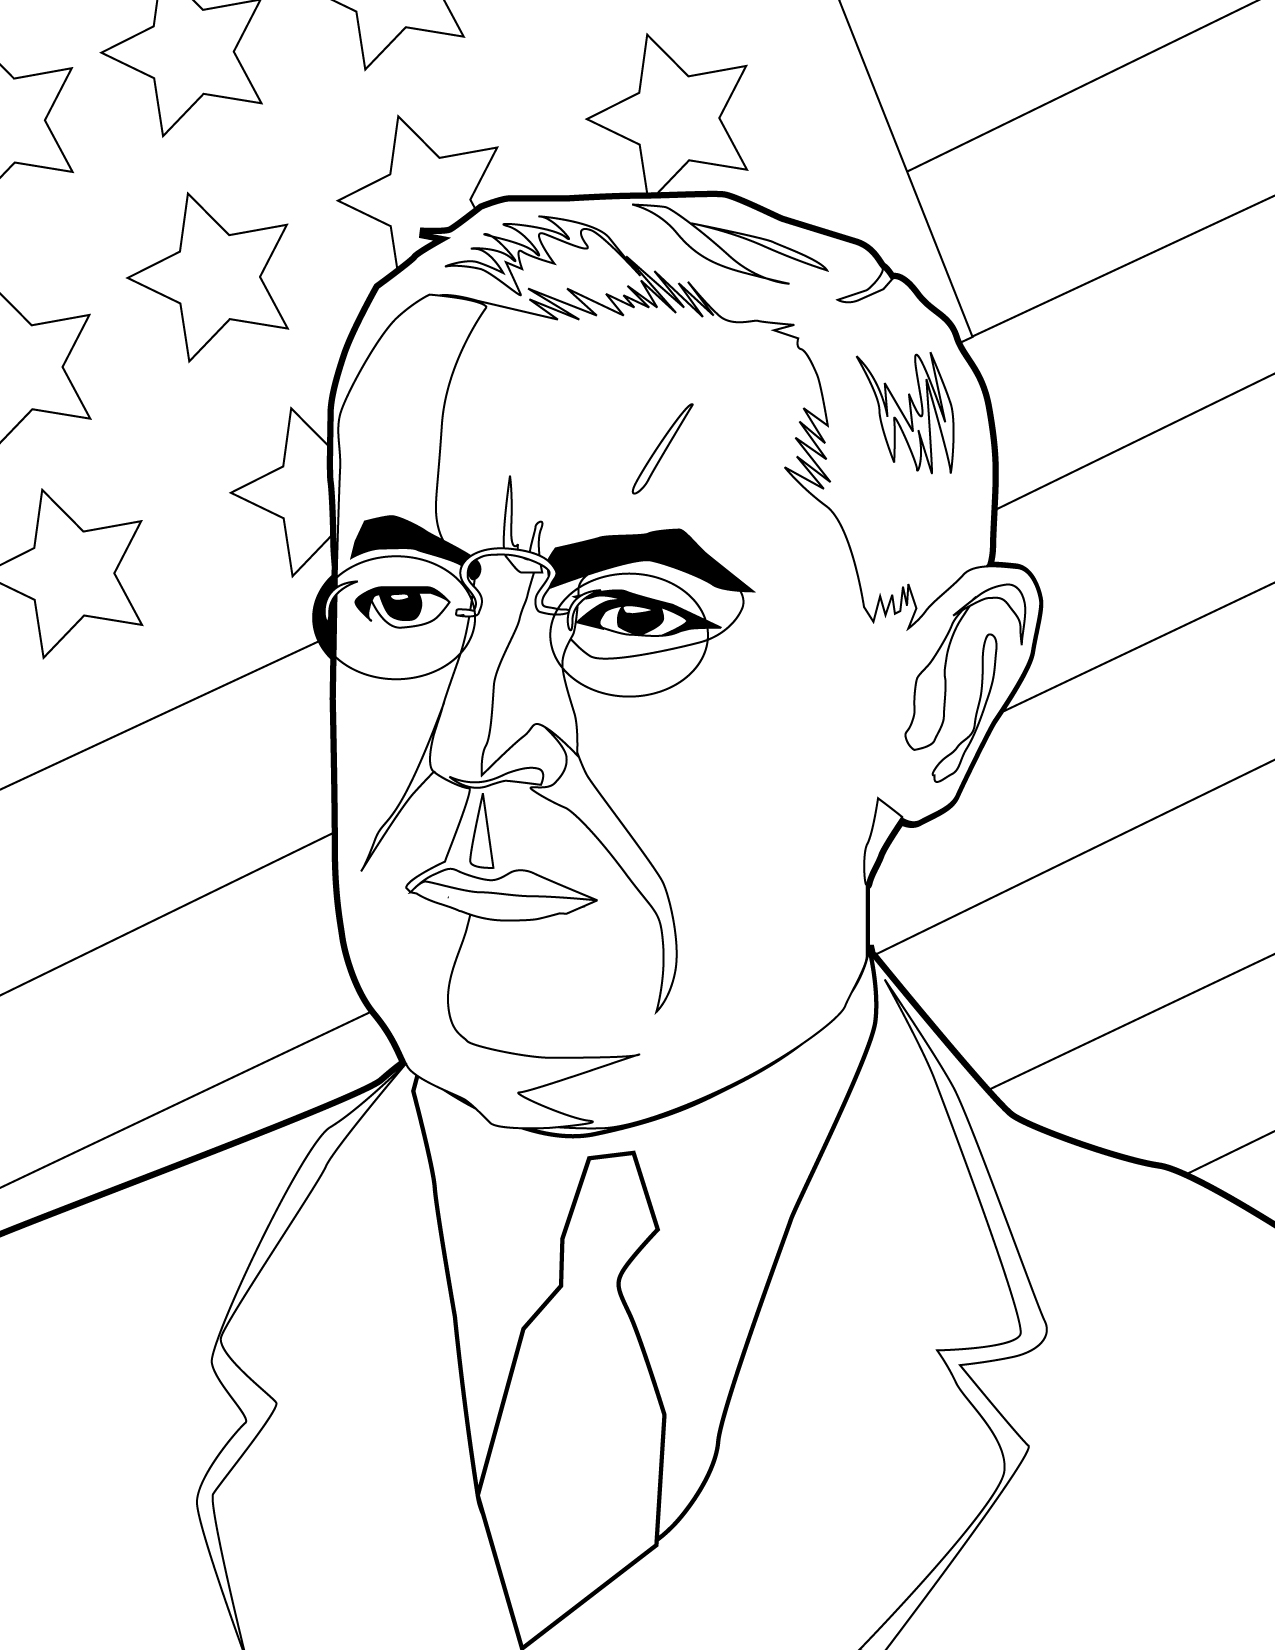 woodrow wilson coloring pages - photo#8